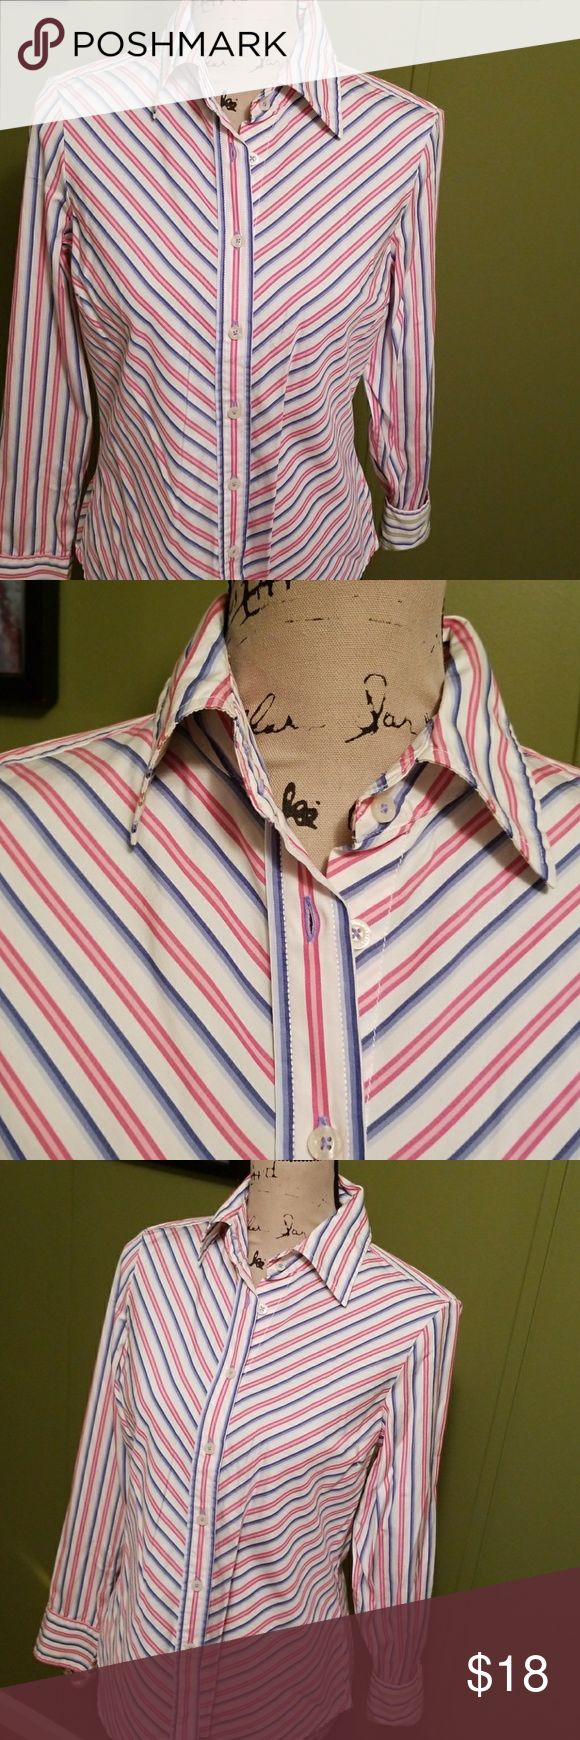 Tommy Hilfiger Button Down Collar Top Stripes of Pink, blue and white long sleeve top. All buttons are functional along with extra buttons (see last picture). Great condition. Tommy Hilfiger Tops Button Down Shirts